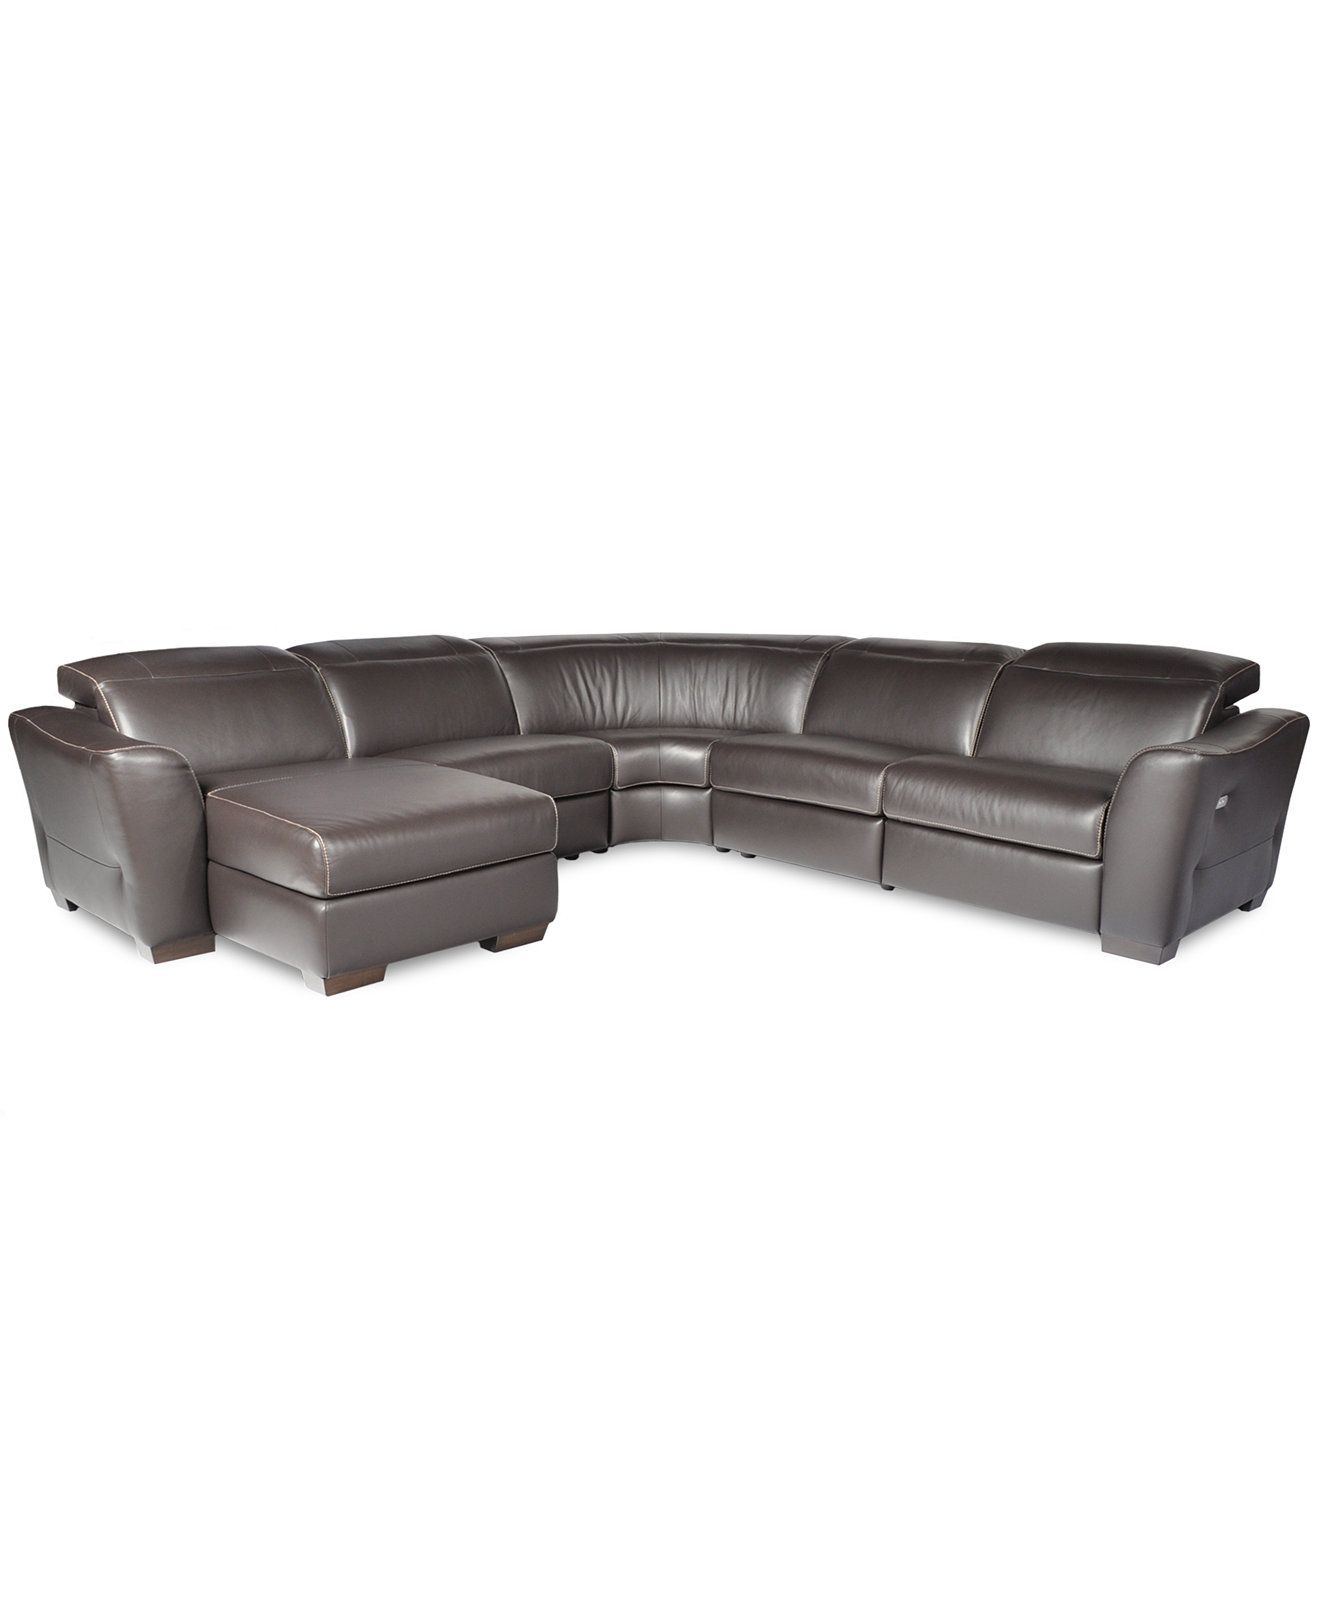 caruso leather 5 piece power motion sectional sofa l shaped broken white with recliner and chaise alessandro pc 1